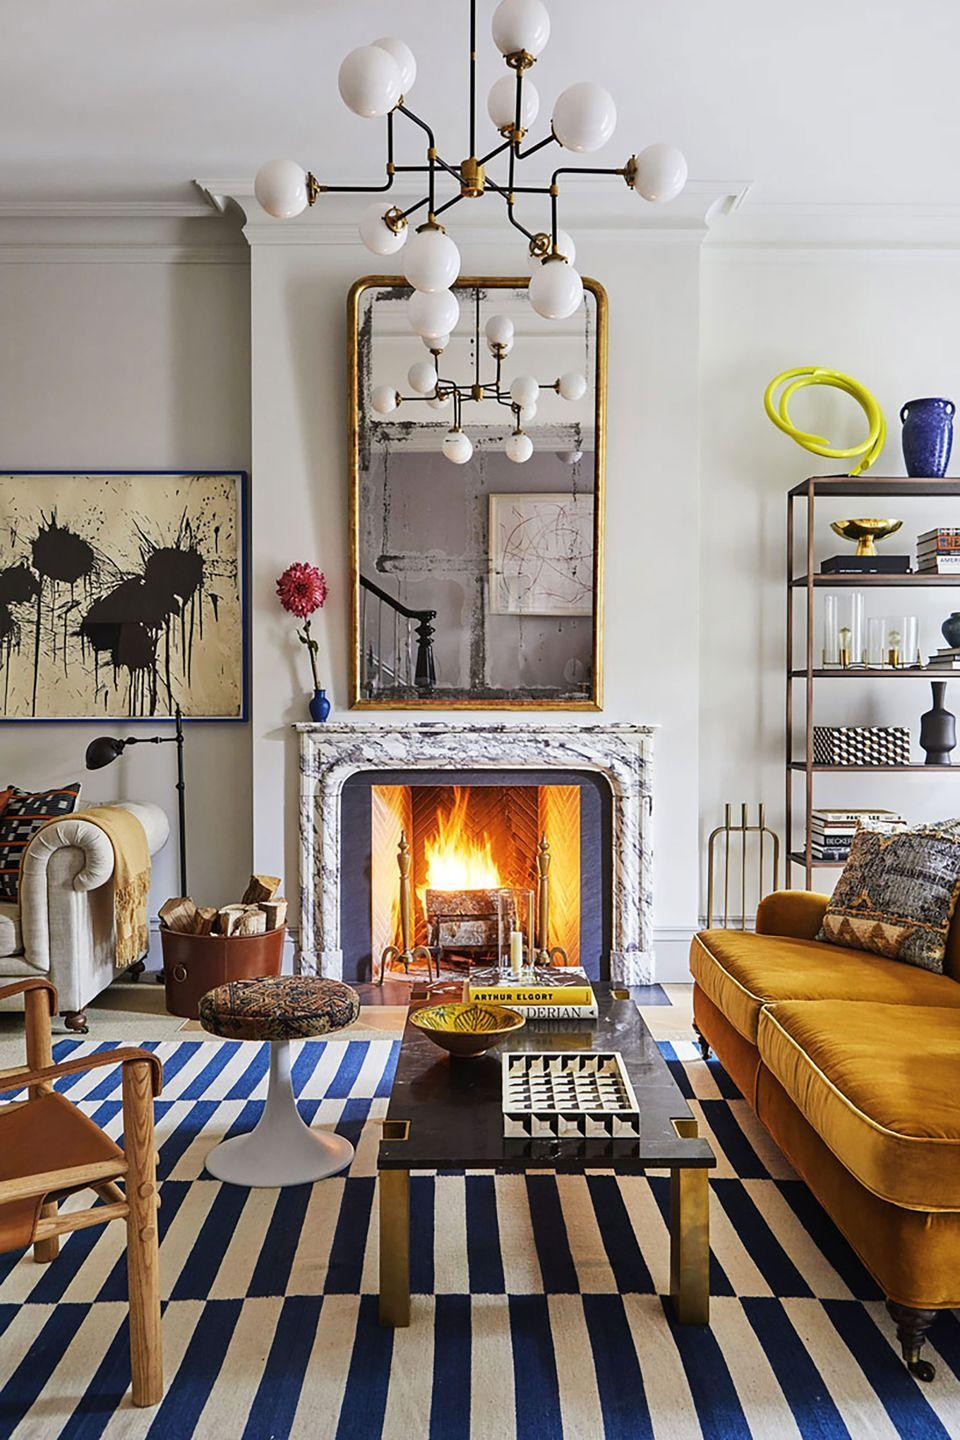 """<p>""""For living rooms, we are seeing plush, comfortable seating, rich tones, and layered styling,"""" says <strong>Mara Miller,</strong> who with her husband, Jesse Carrier, are principals at the <a href=""""https://www.elledecor.com/design-decorate/interior-designers/g3076/a-list-interior-designers/"""" rel=""""nofollow noopener"""" target=""""_blank"""" data-ylk=""""slk:A-List"""" class=""""link rapid-noclick-resp"""">A-List</a> firm <a href=""""https://www.carrierandcompany.com/"""" rel=""""nofollow noopener"""" target=""""_blank"""" data-ylk=""""slk:Carrier and Company"""" class=""""link rapid-noclick-resp"""">Carrier and Company</a>. """"Thanks to <a href=""""https://www.elledecor.com/life-culture/fun-at-home/a32019822/elle-decor-zoom-backgrounds/"""" rel=""""nofollow noopener"""" target=""""_blank"""" data-ylk=""""slk:Zoom backgrounds"""" class=""""link rapid-noclick-resp"""">Zoom backgrounds</a>, accessorizing and styling are finally getting the credit they deserve. We see accessorizing becoming bolder, more artful, and more personal in 2021."""" </p>"""